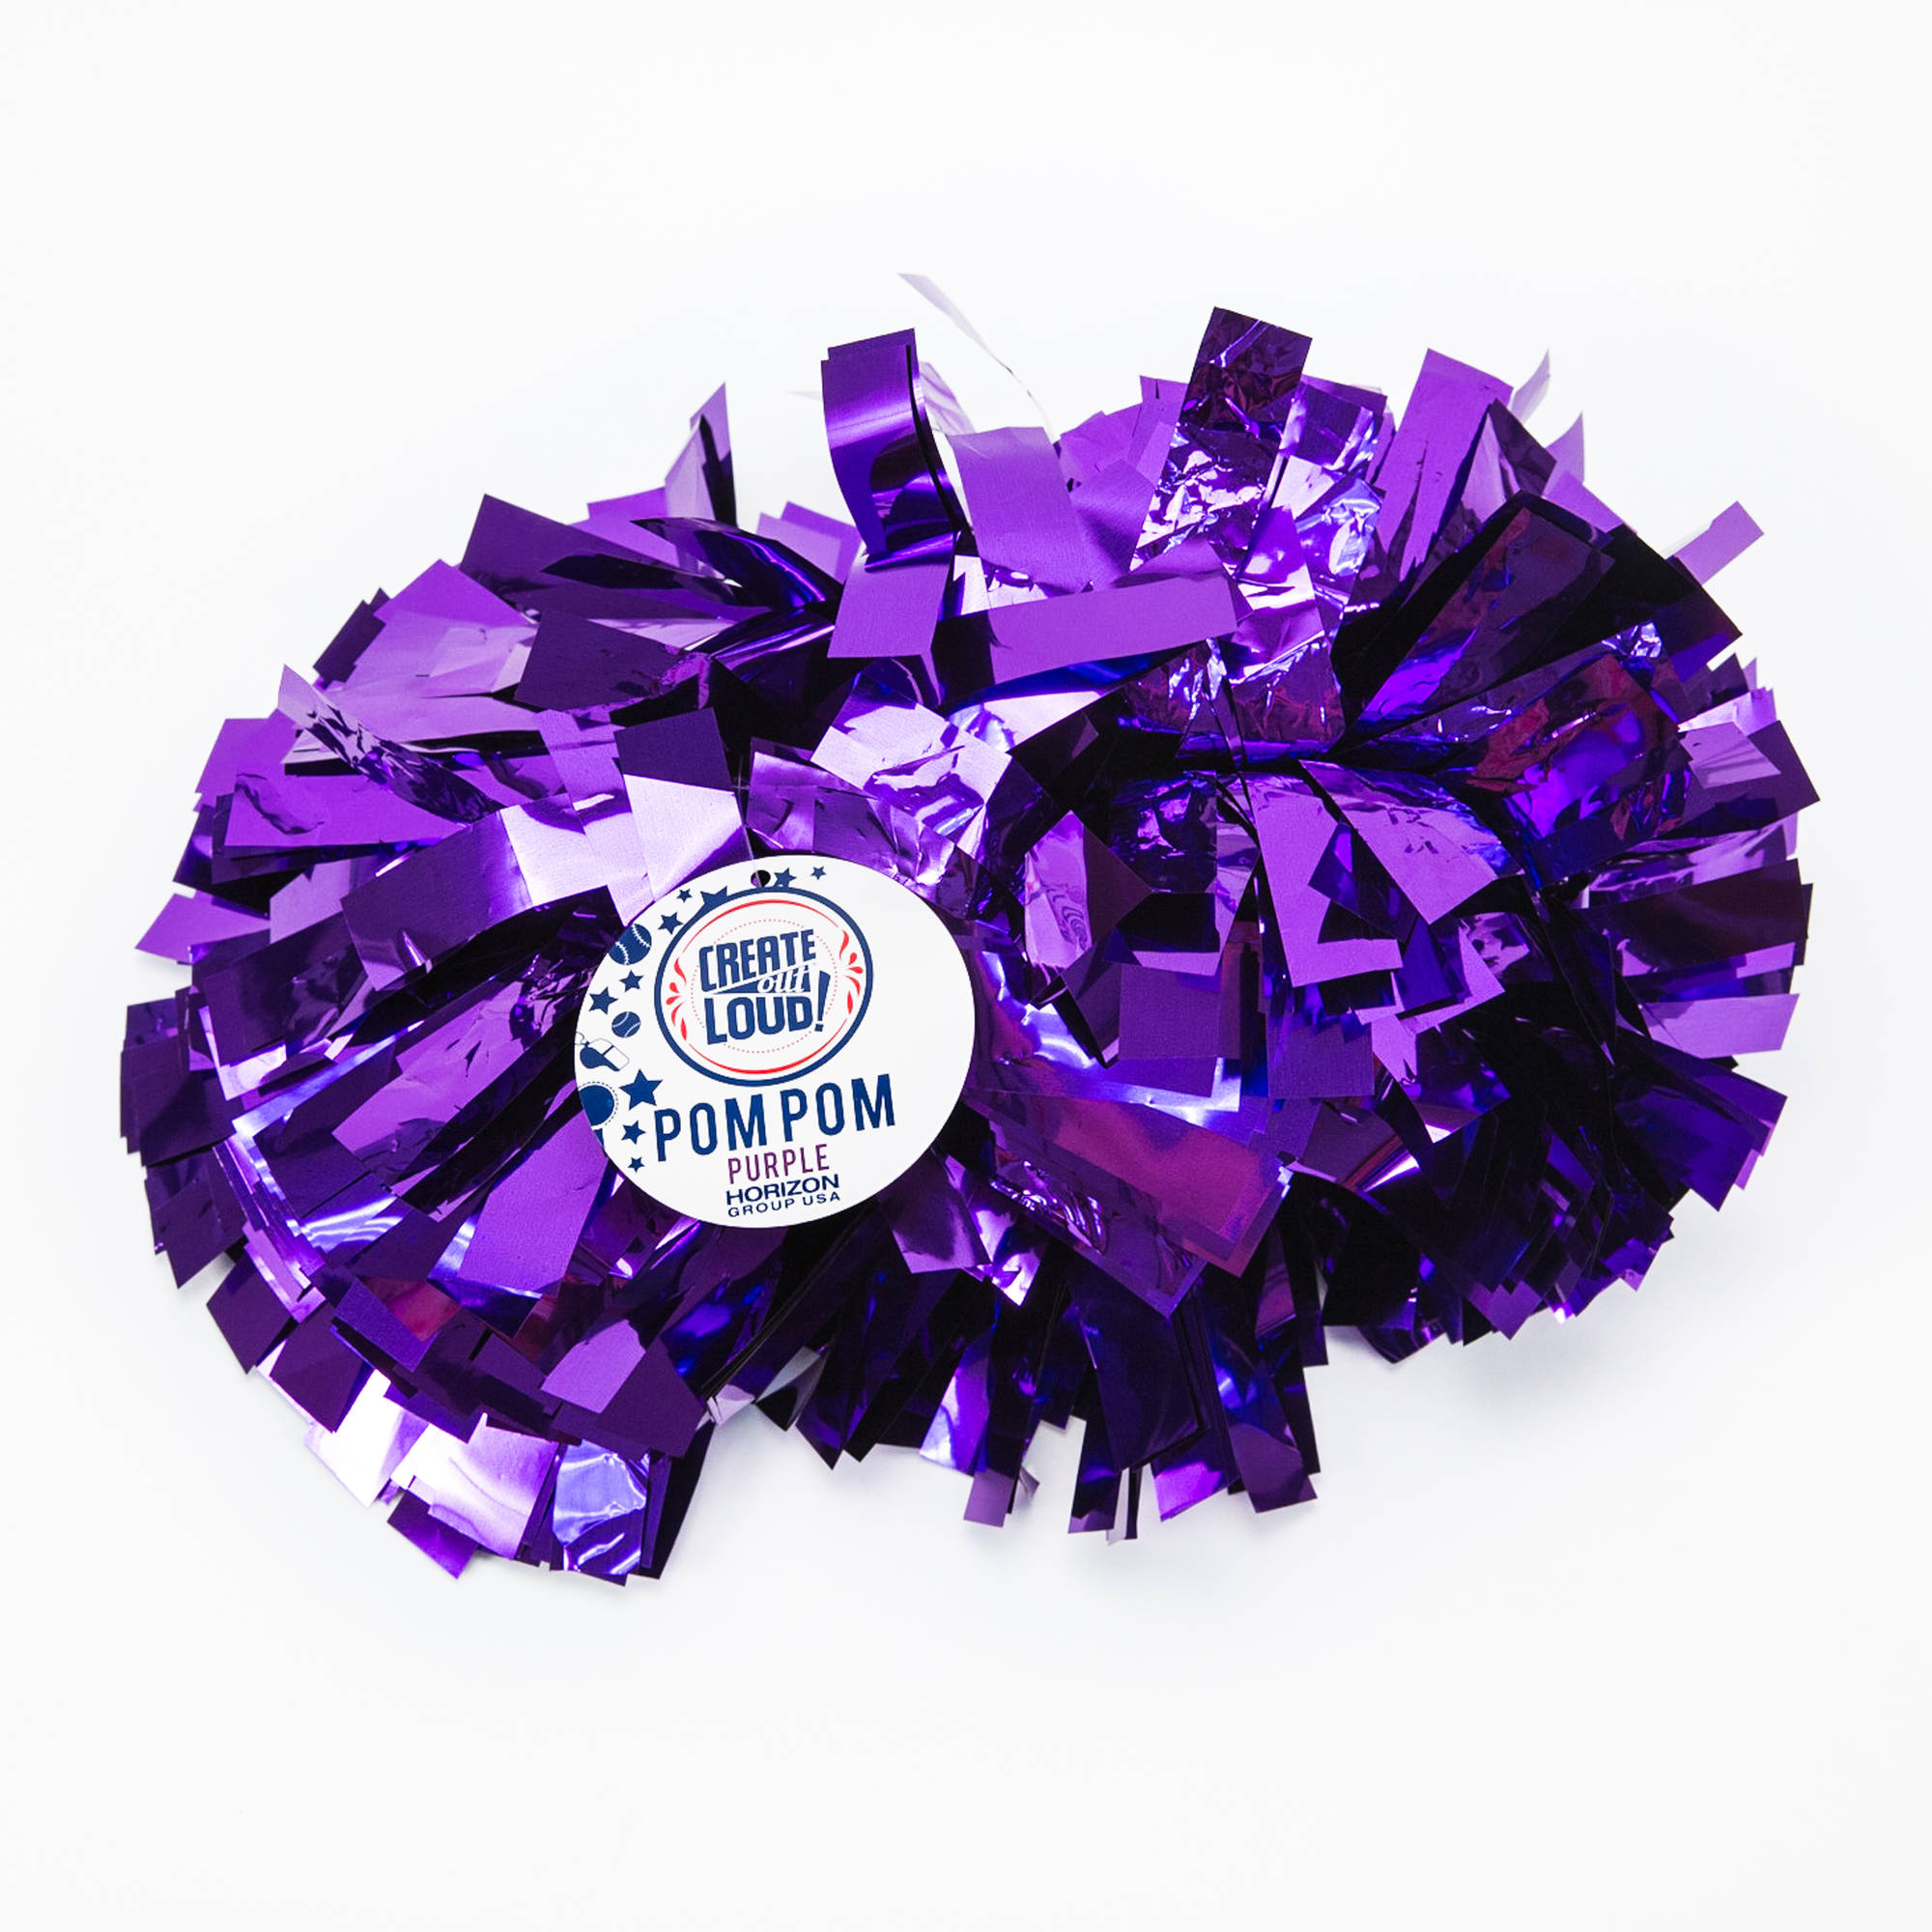 Create Out Loud Purple Pom Pom by Horizon Group USA